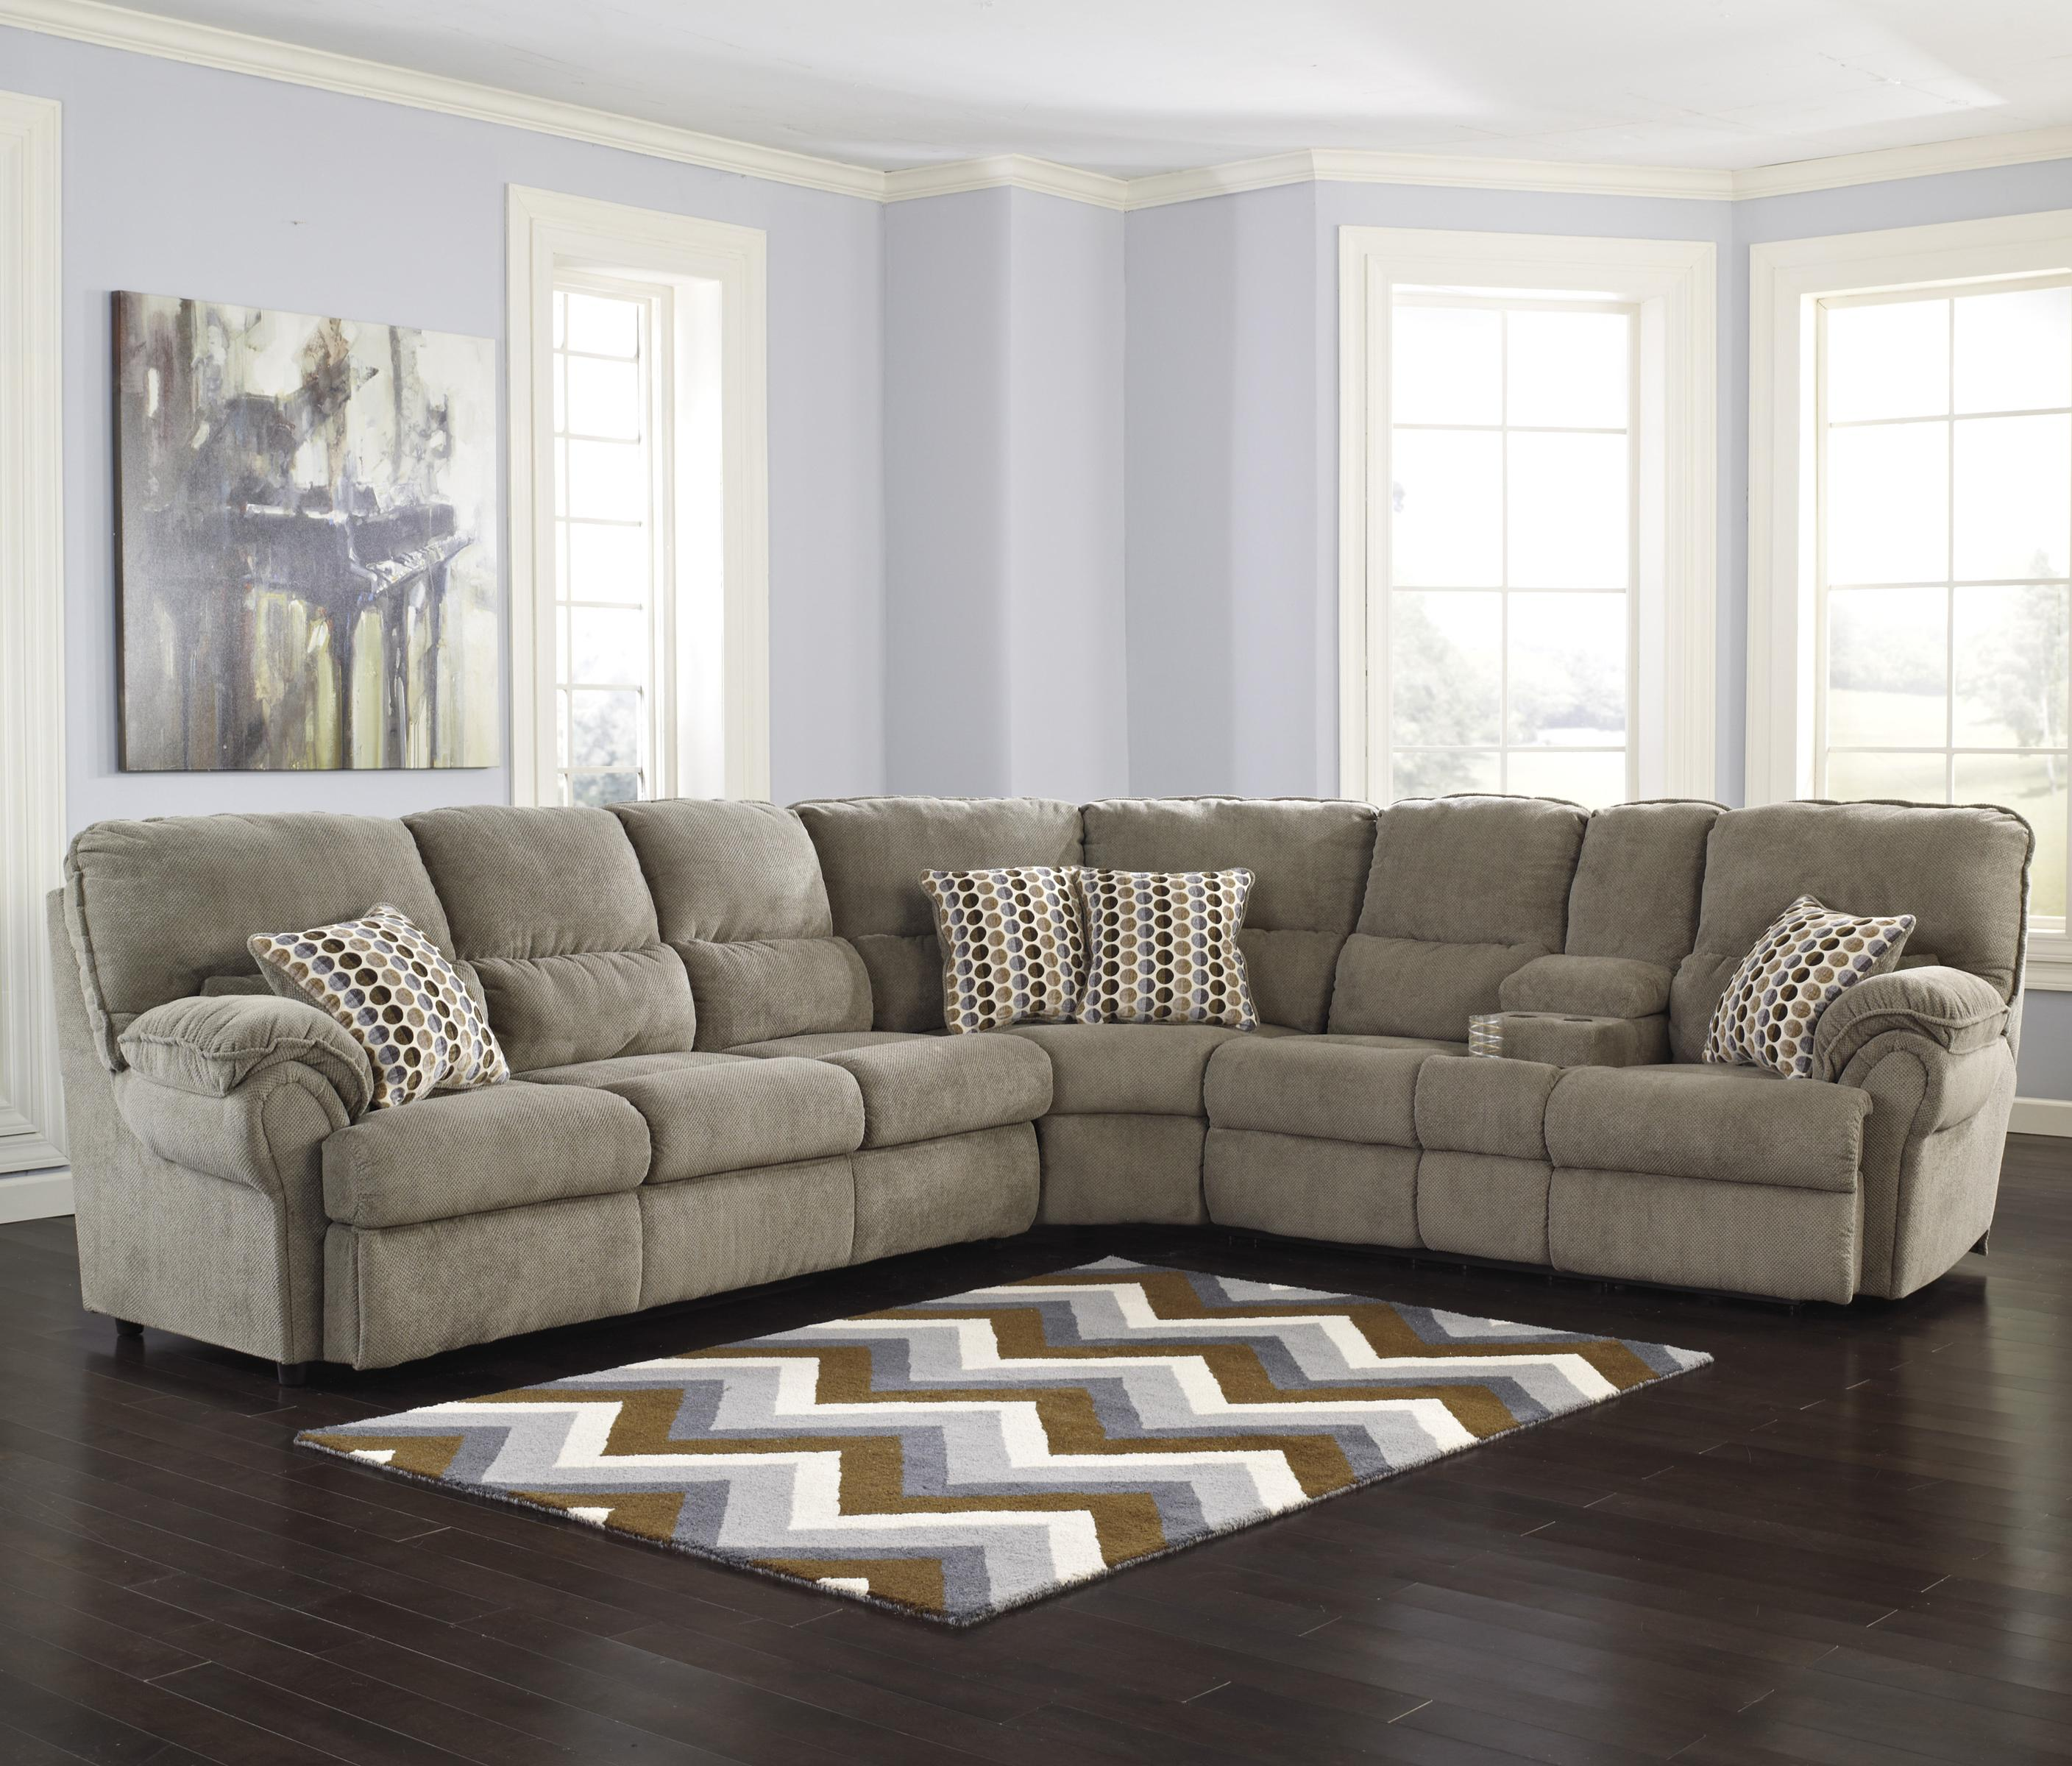 Signature Design by Ashley fort mandor Mocha Sectional w